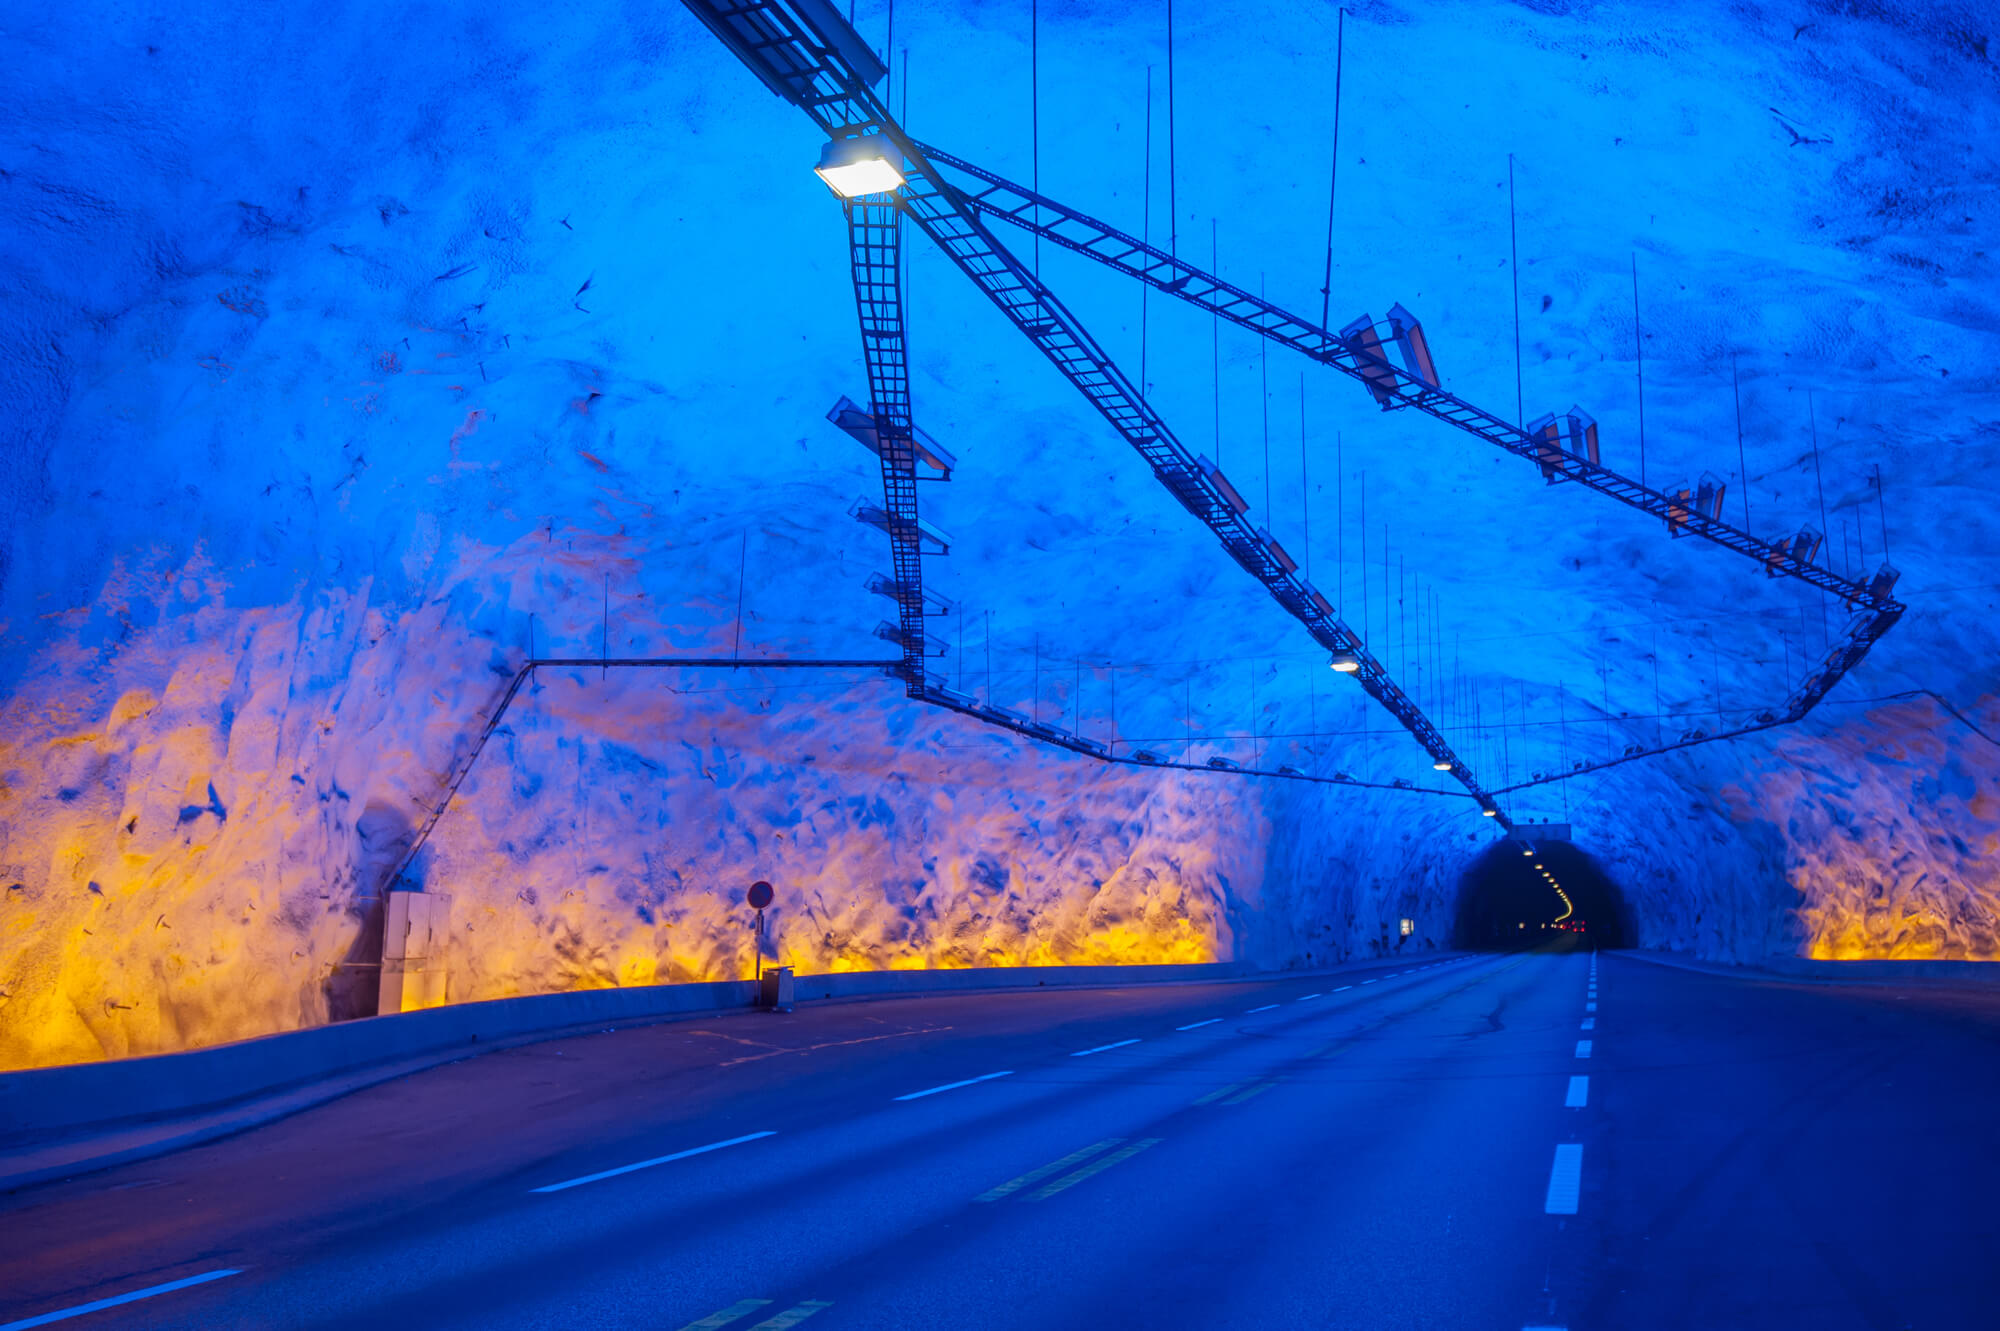 Driving through a cave with yellow and blue lights in Lærdalstunnelen in western Norway